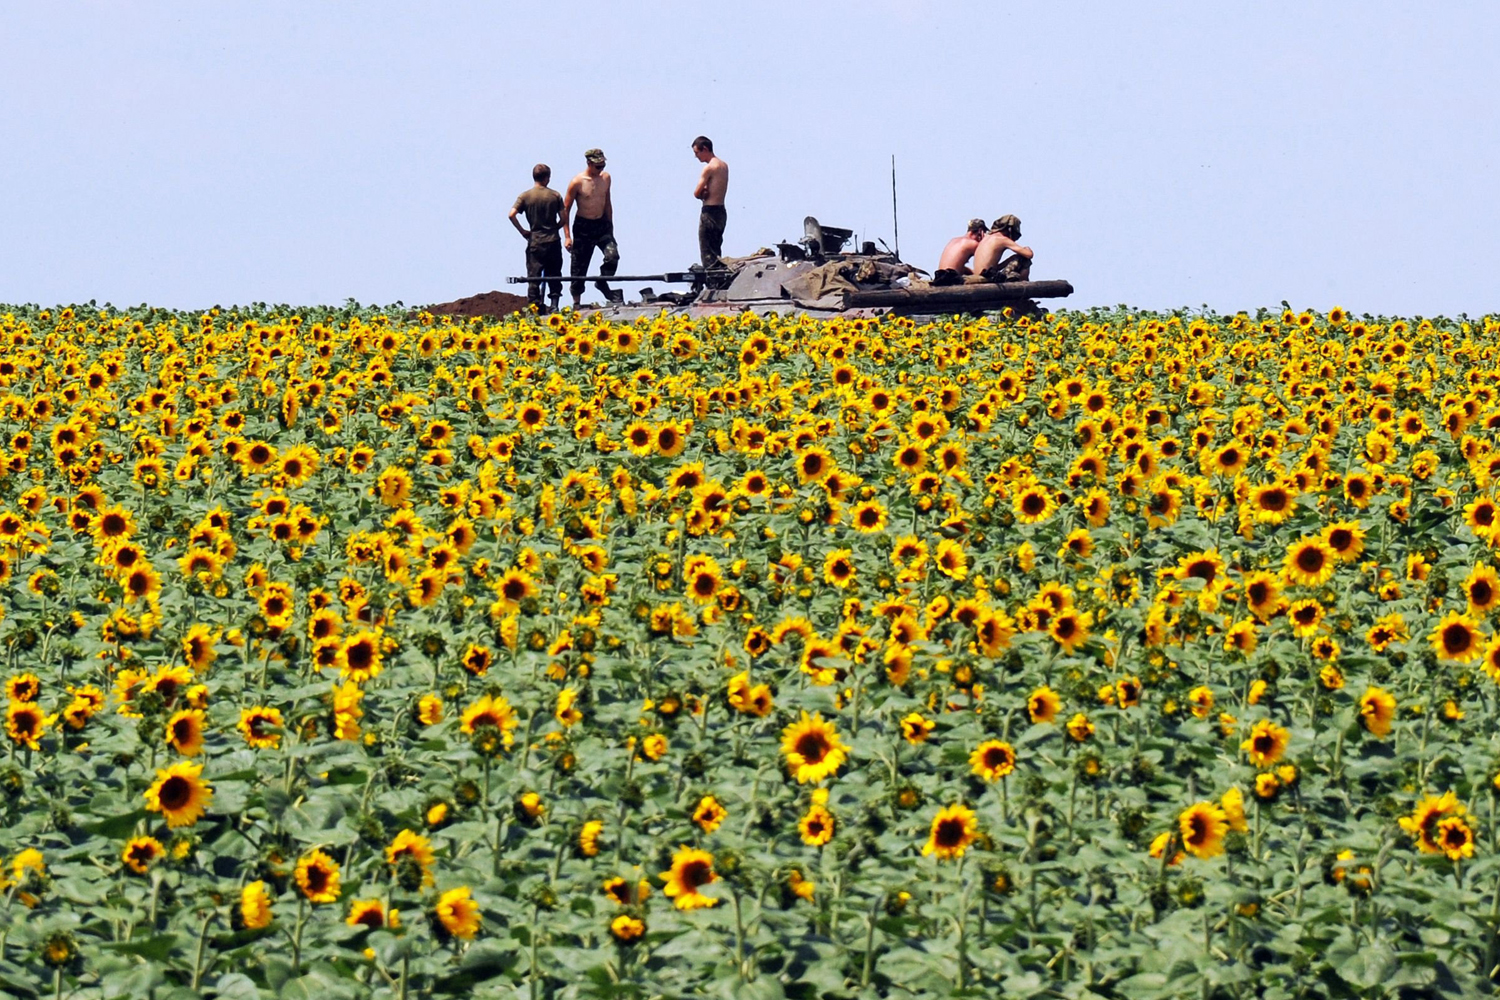 Jul. 10, 2014. Ukrainian government soldiers sit on an armoured vehicle as they take up a position in a sunflower field around 20 Km south of Donetsk.